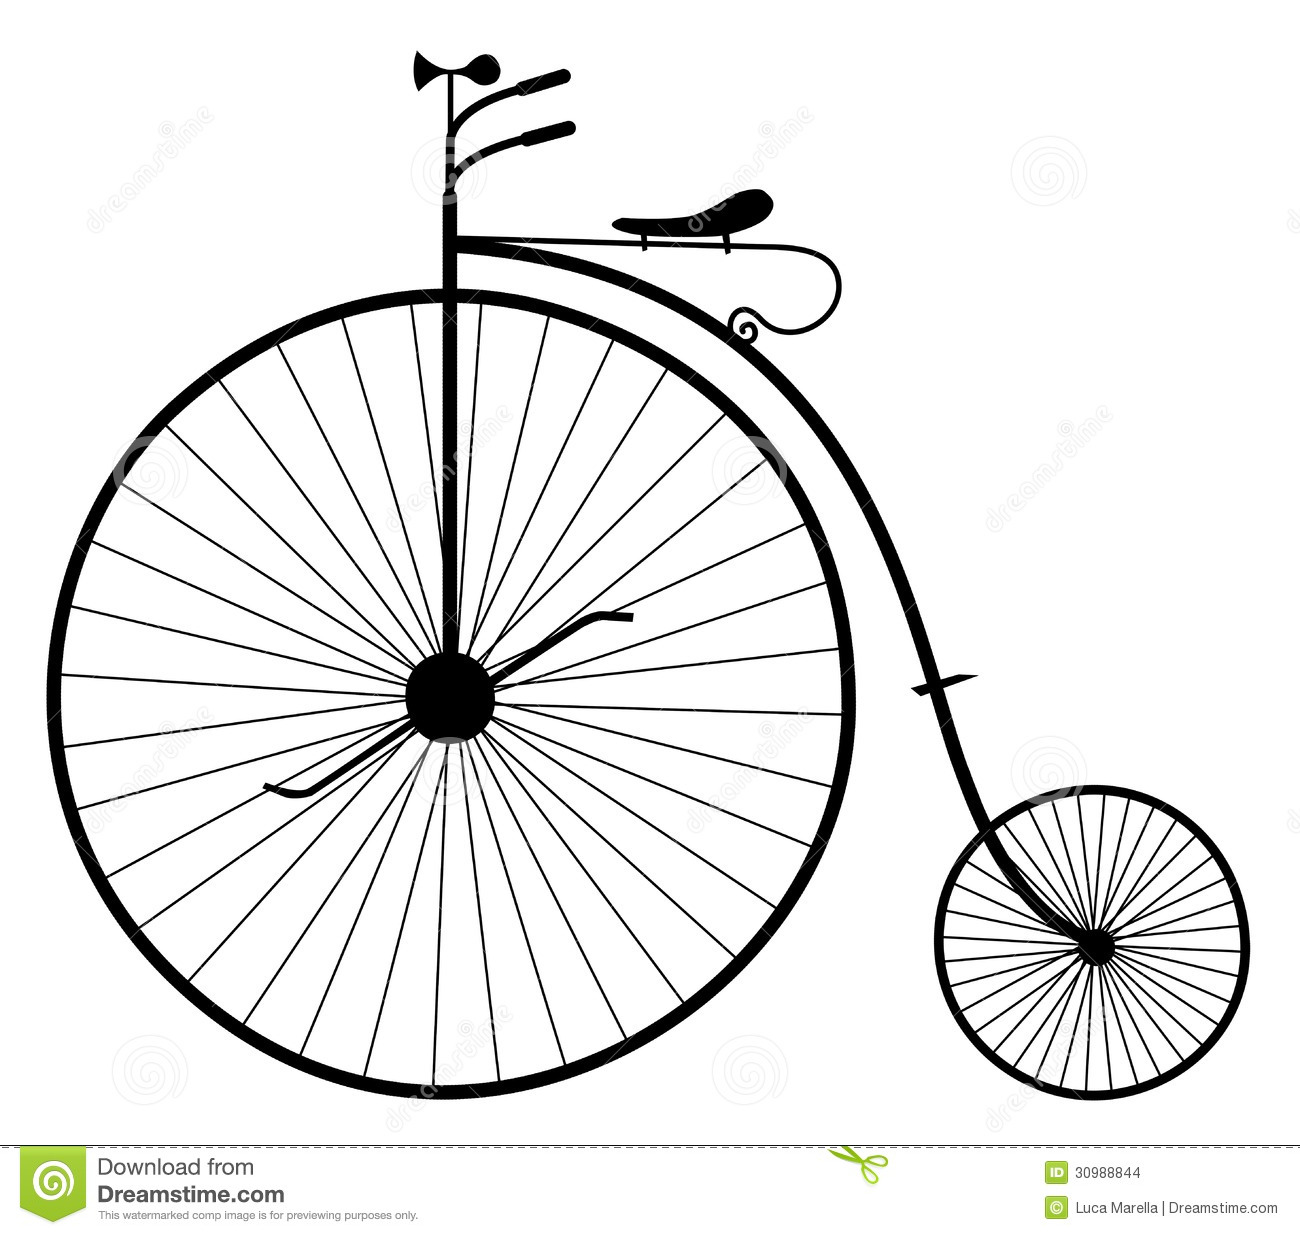 Bicycle illustration retro - photo#17